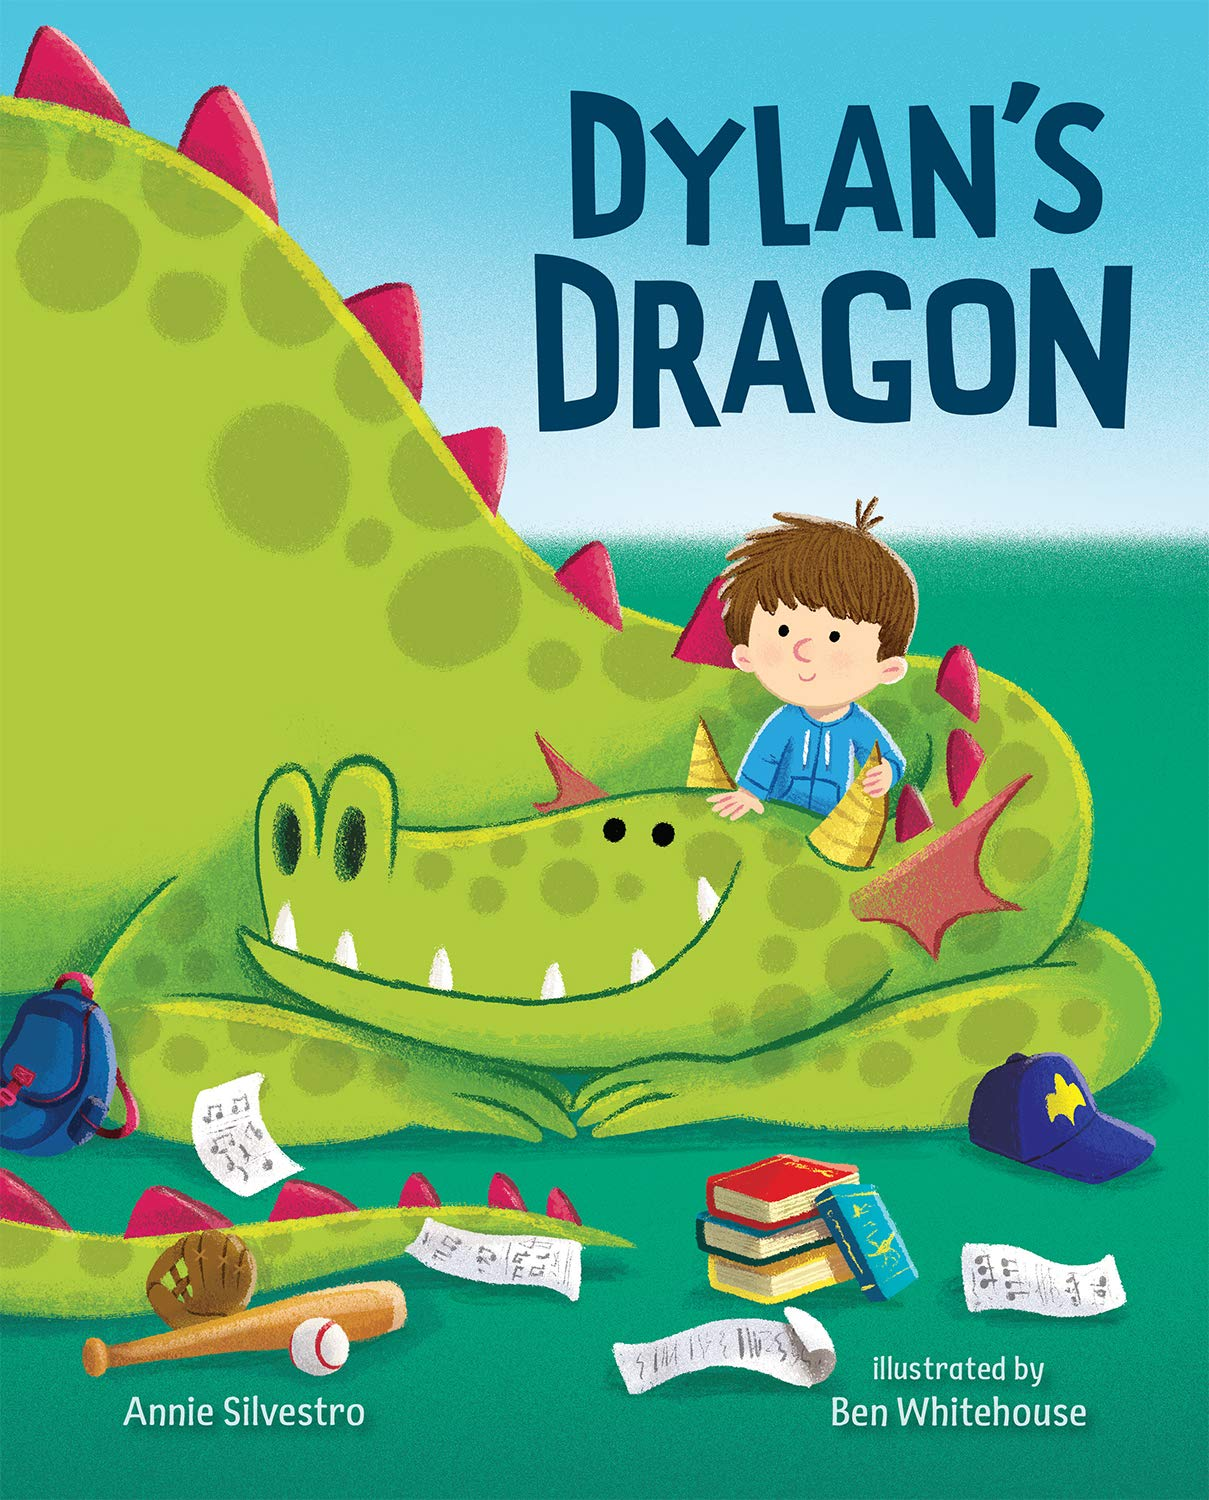 celebrate-picture-books-picture-book-review-dylan's-dragon-cover